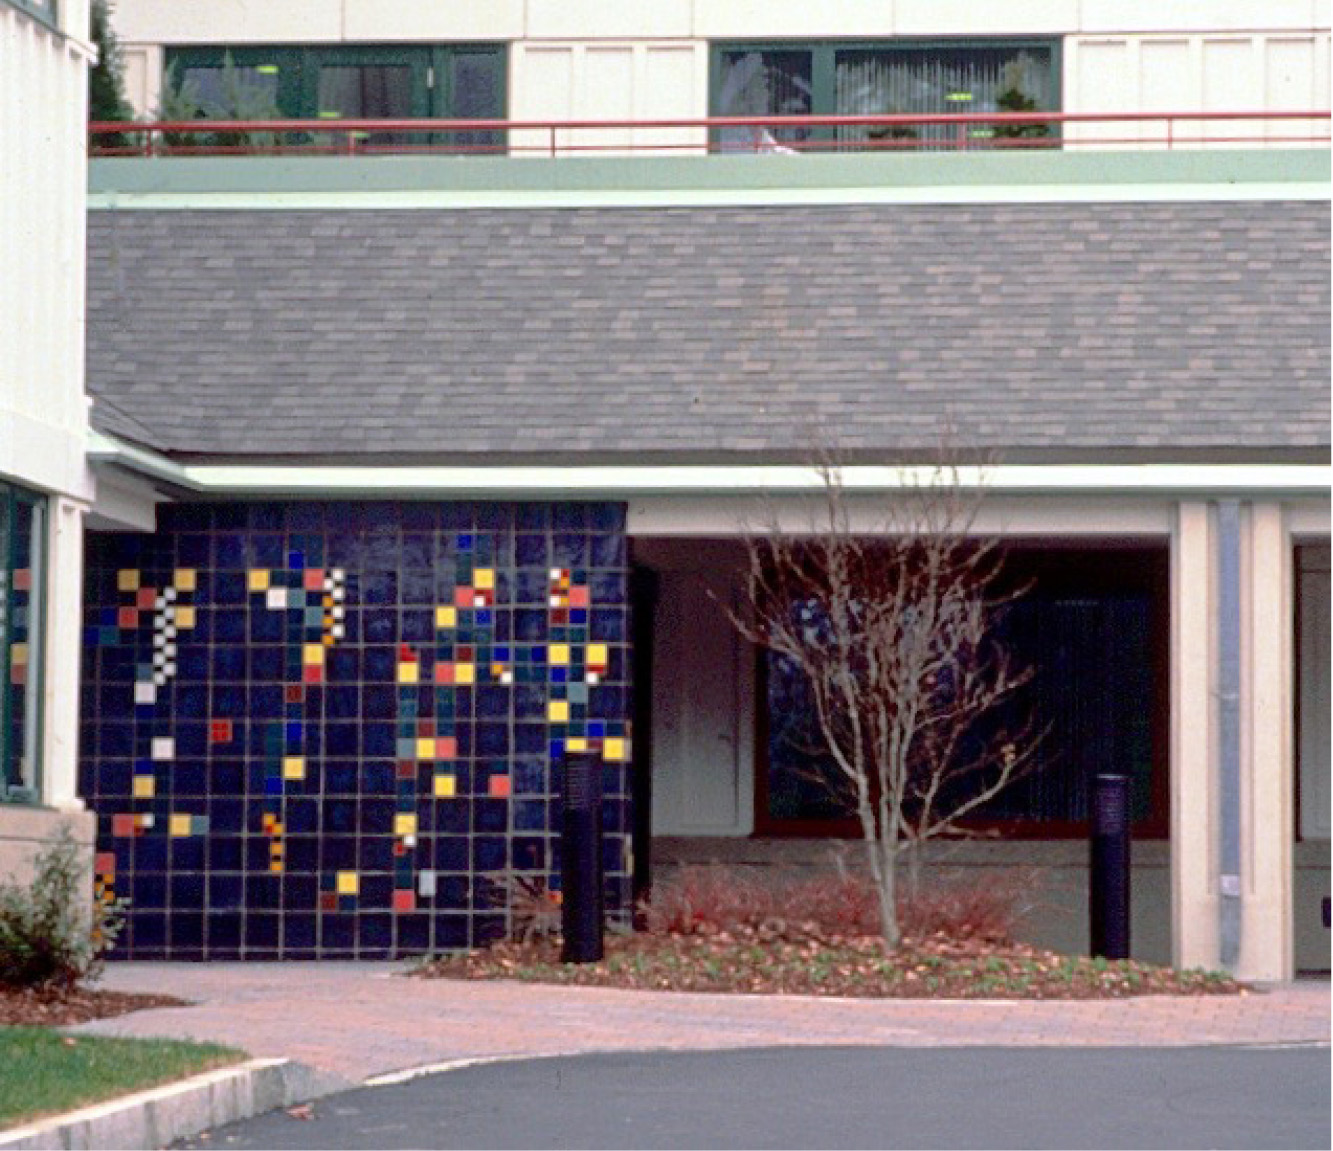 This is the exterior side of the tile mural shown above.